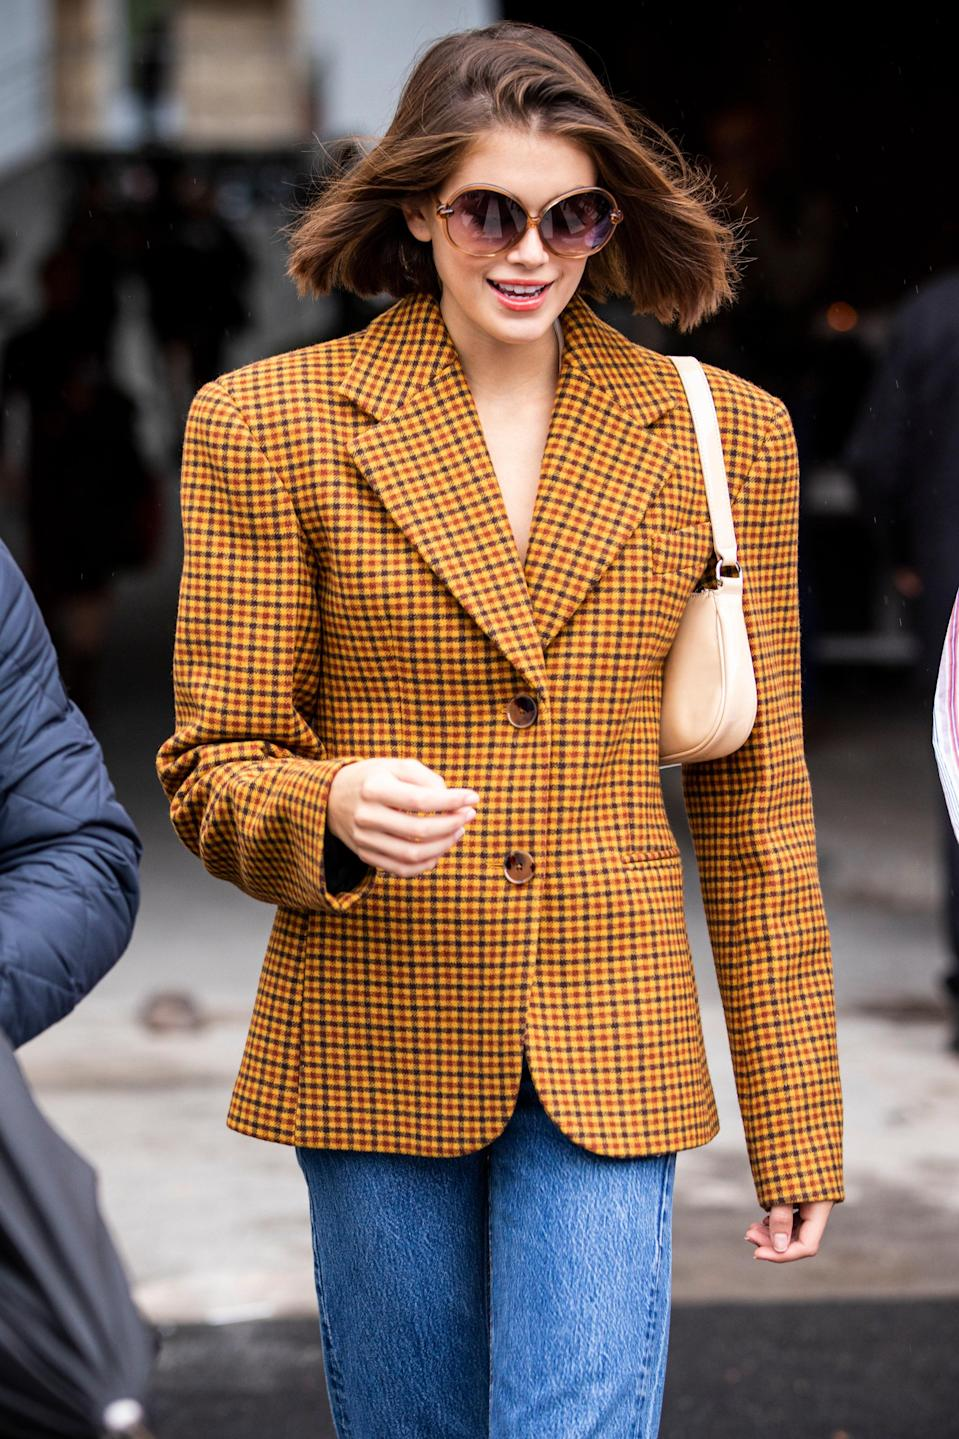 But sometimes she switches it up with mini purses and structured blazers.